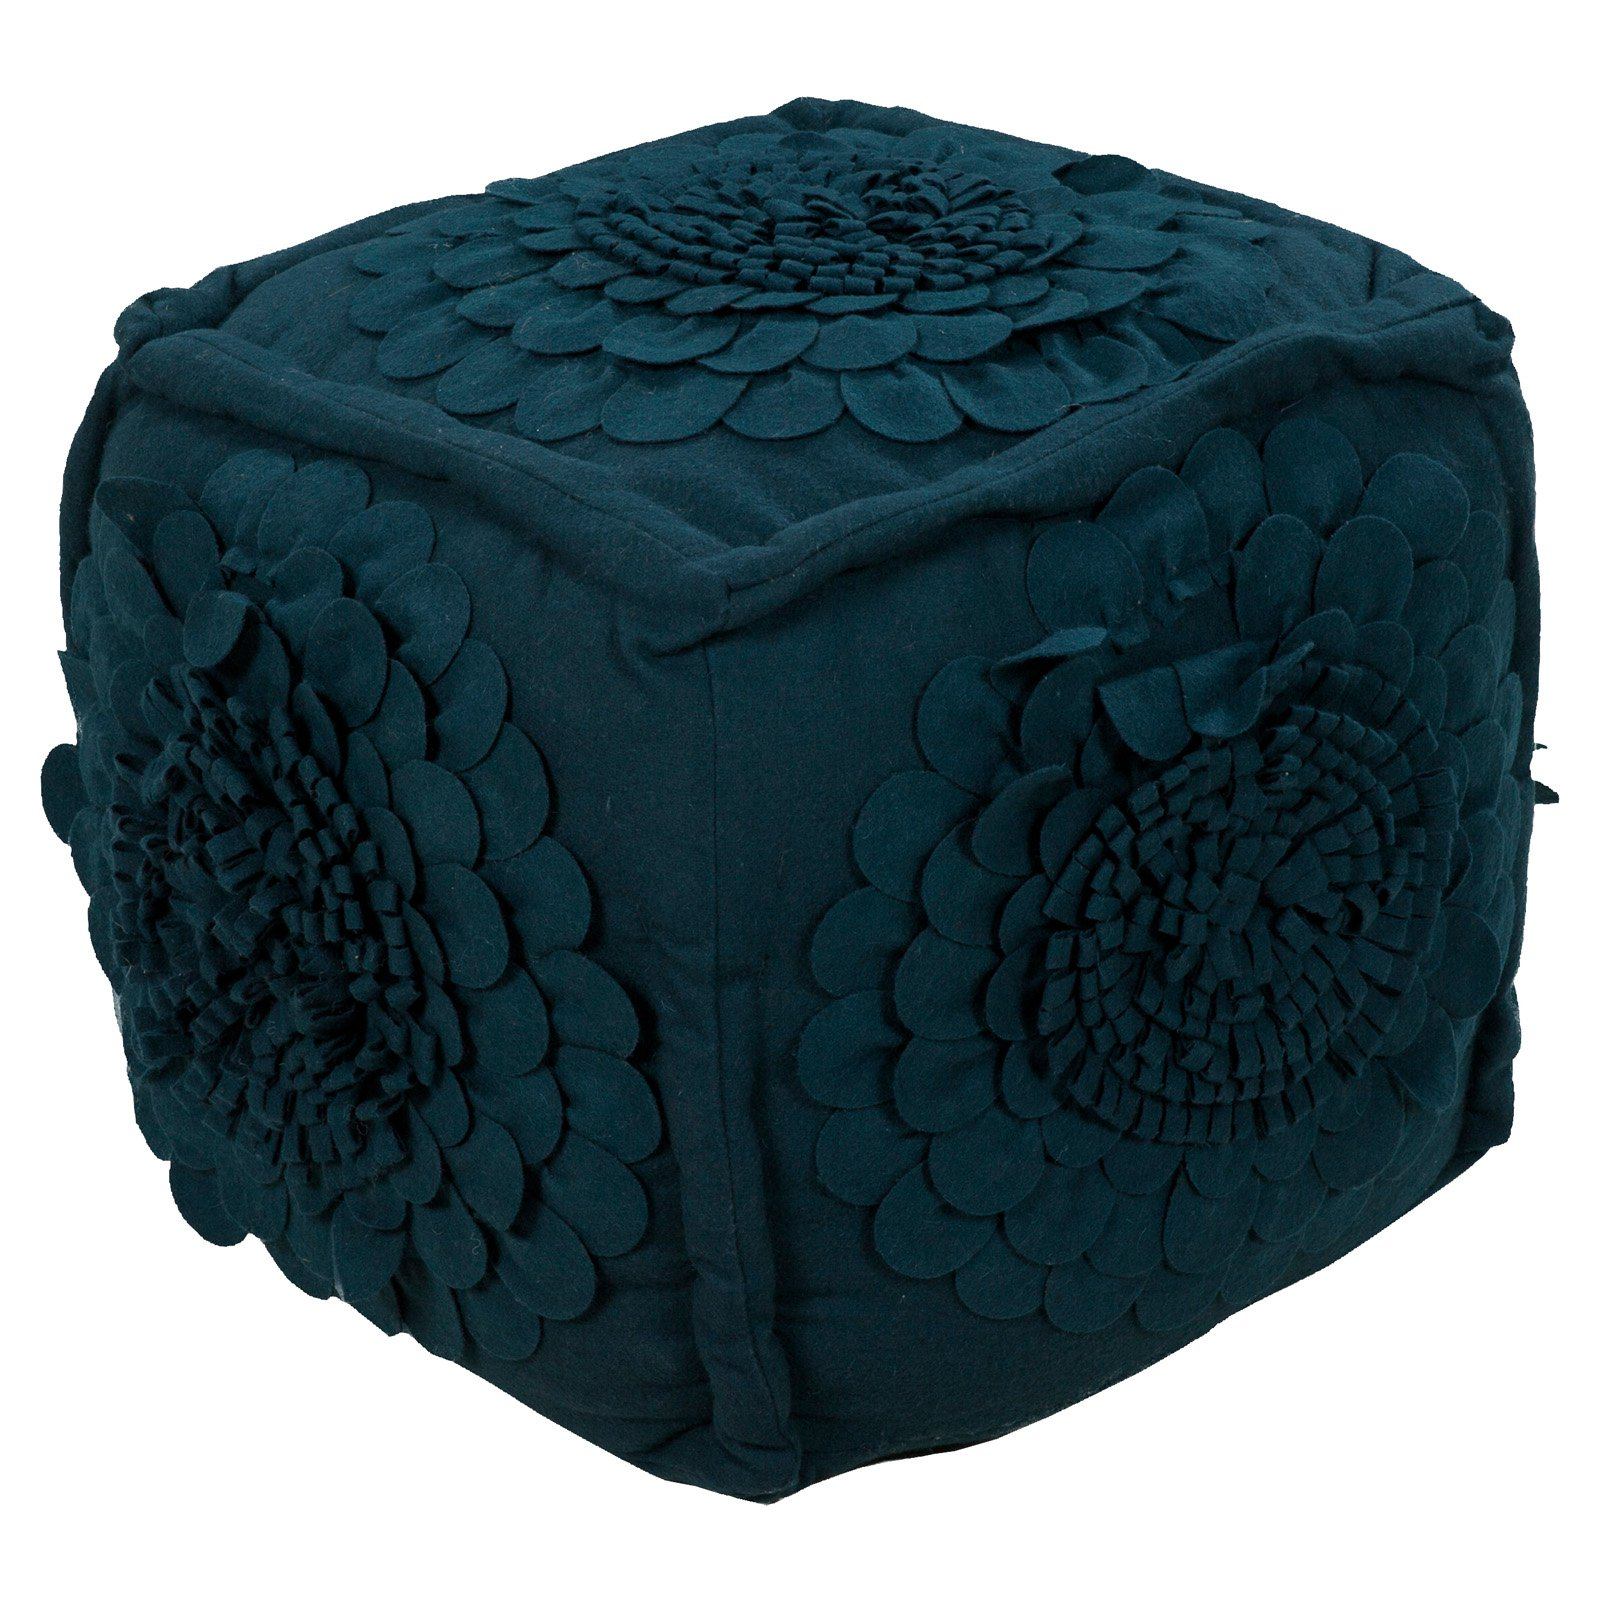 Surya 18 in. Cube Wool Pouf Ink by Surya Rugs